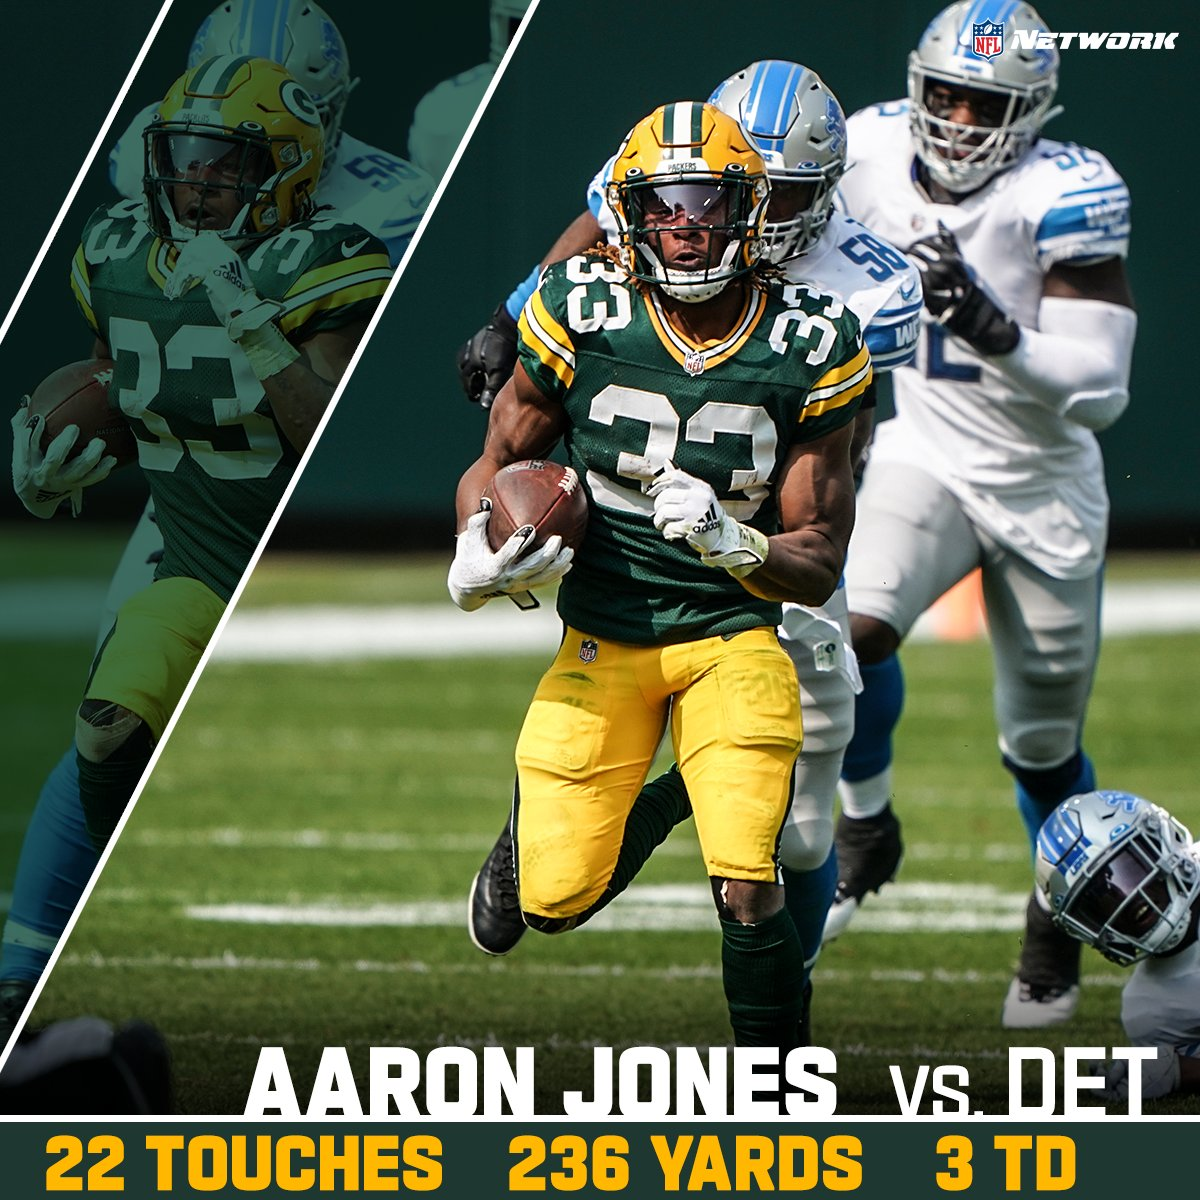 Aaron Jones could not be stopped 💪 @Showtyme_33   @packers